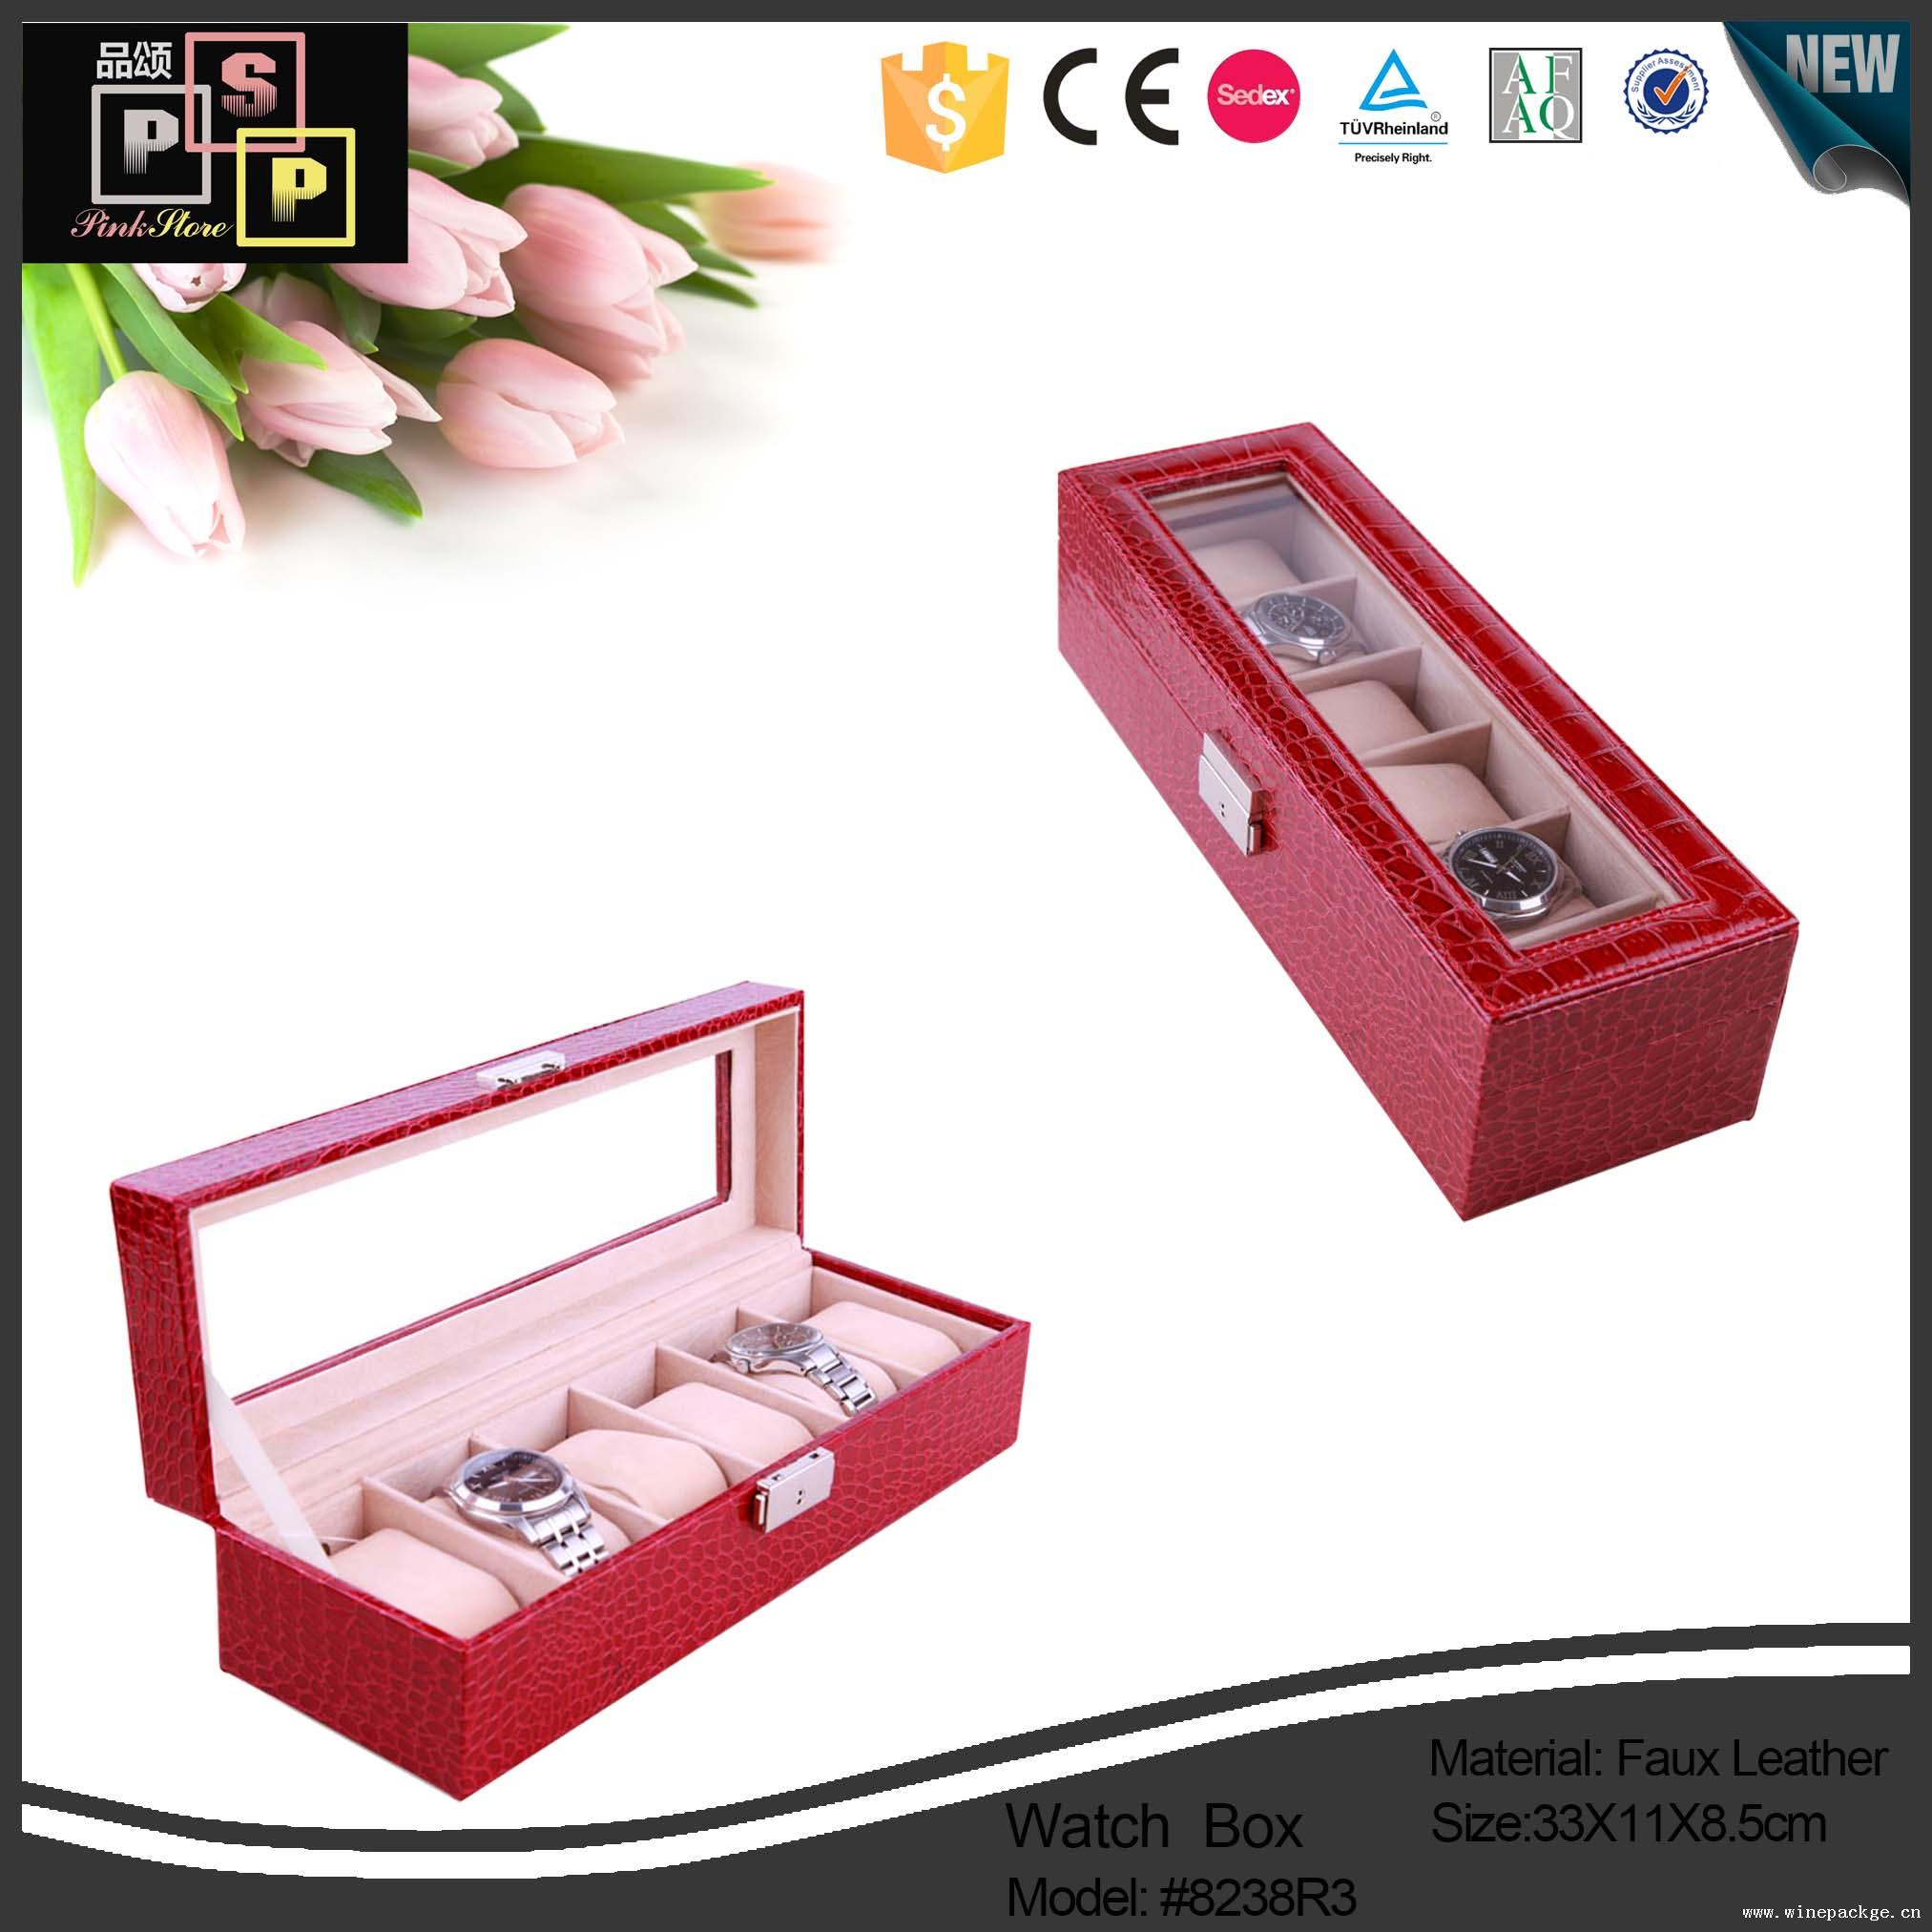 PU Leather Material and Stamping,Embossing, Printing leather watch box